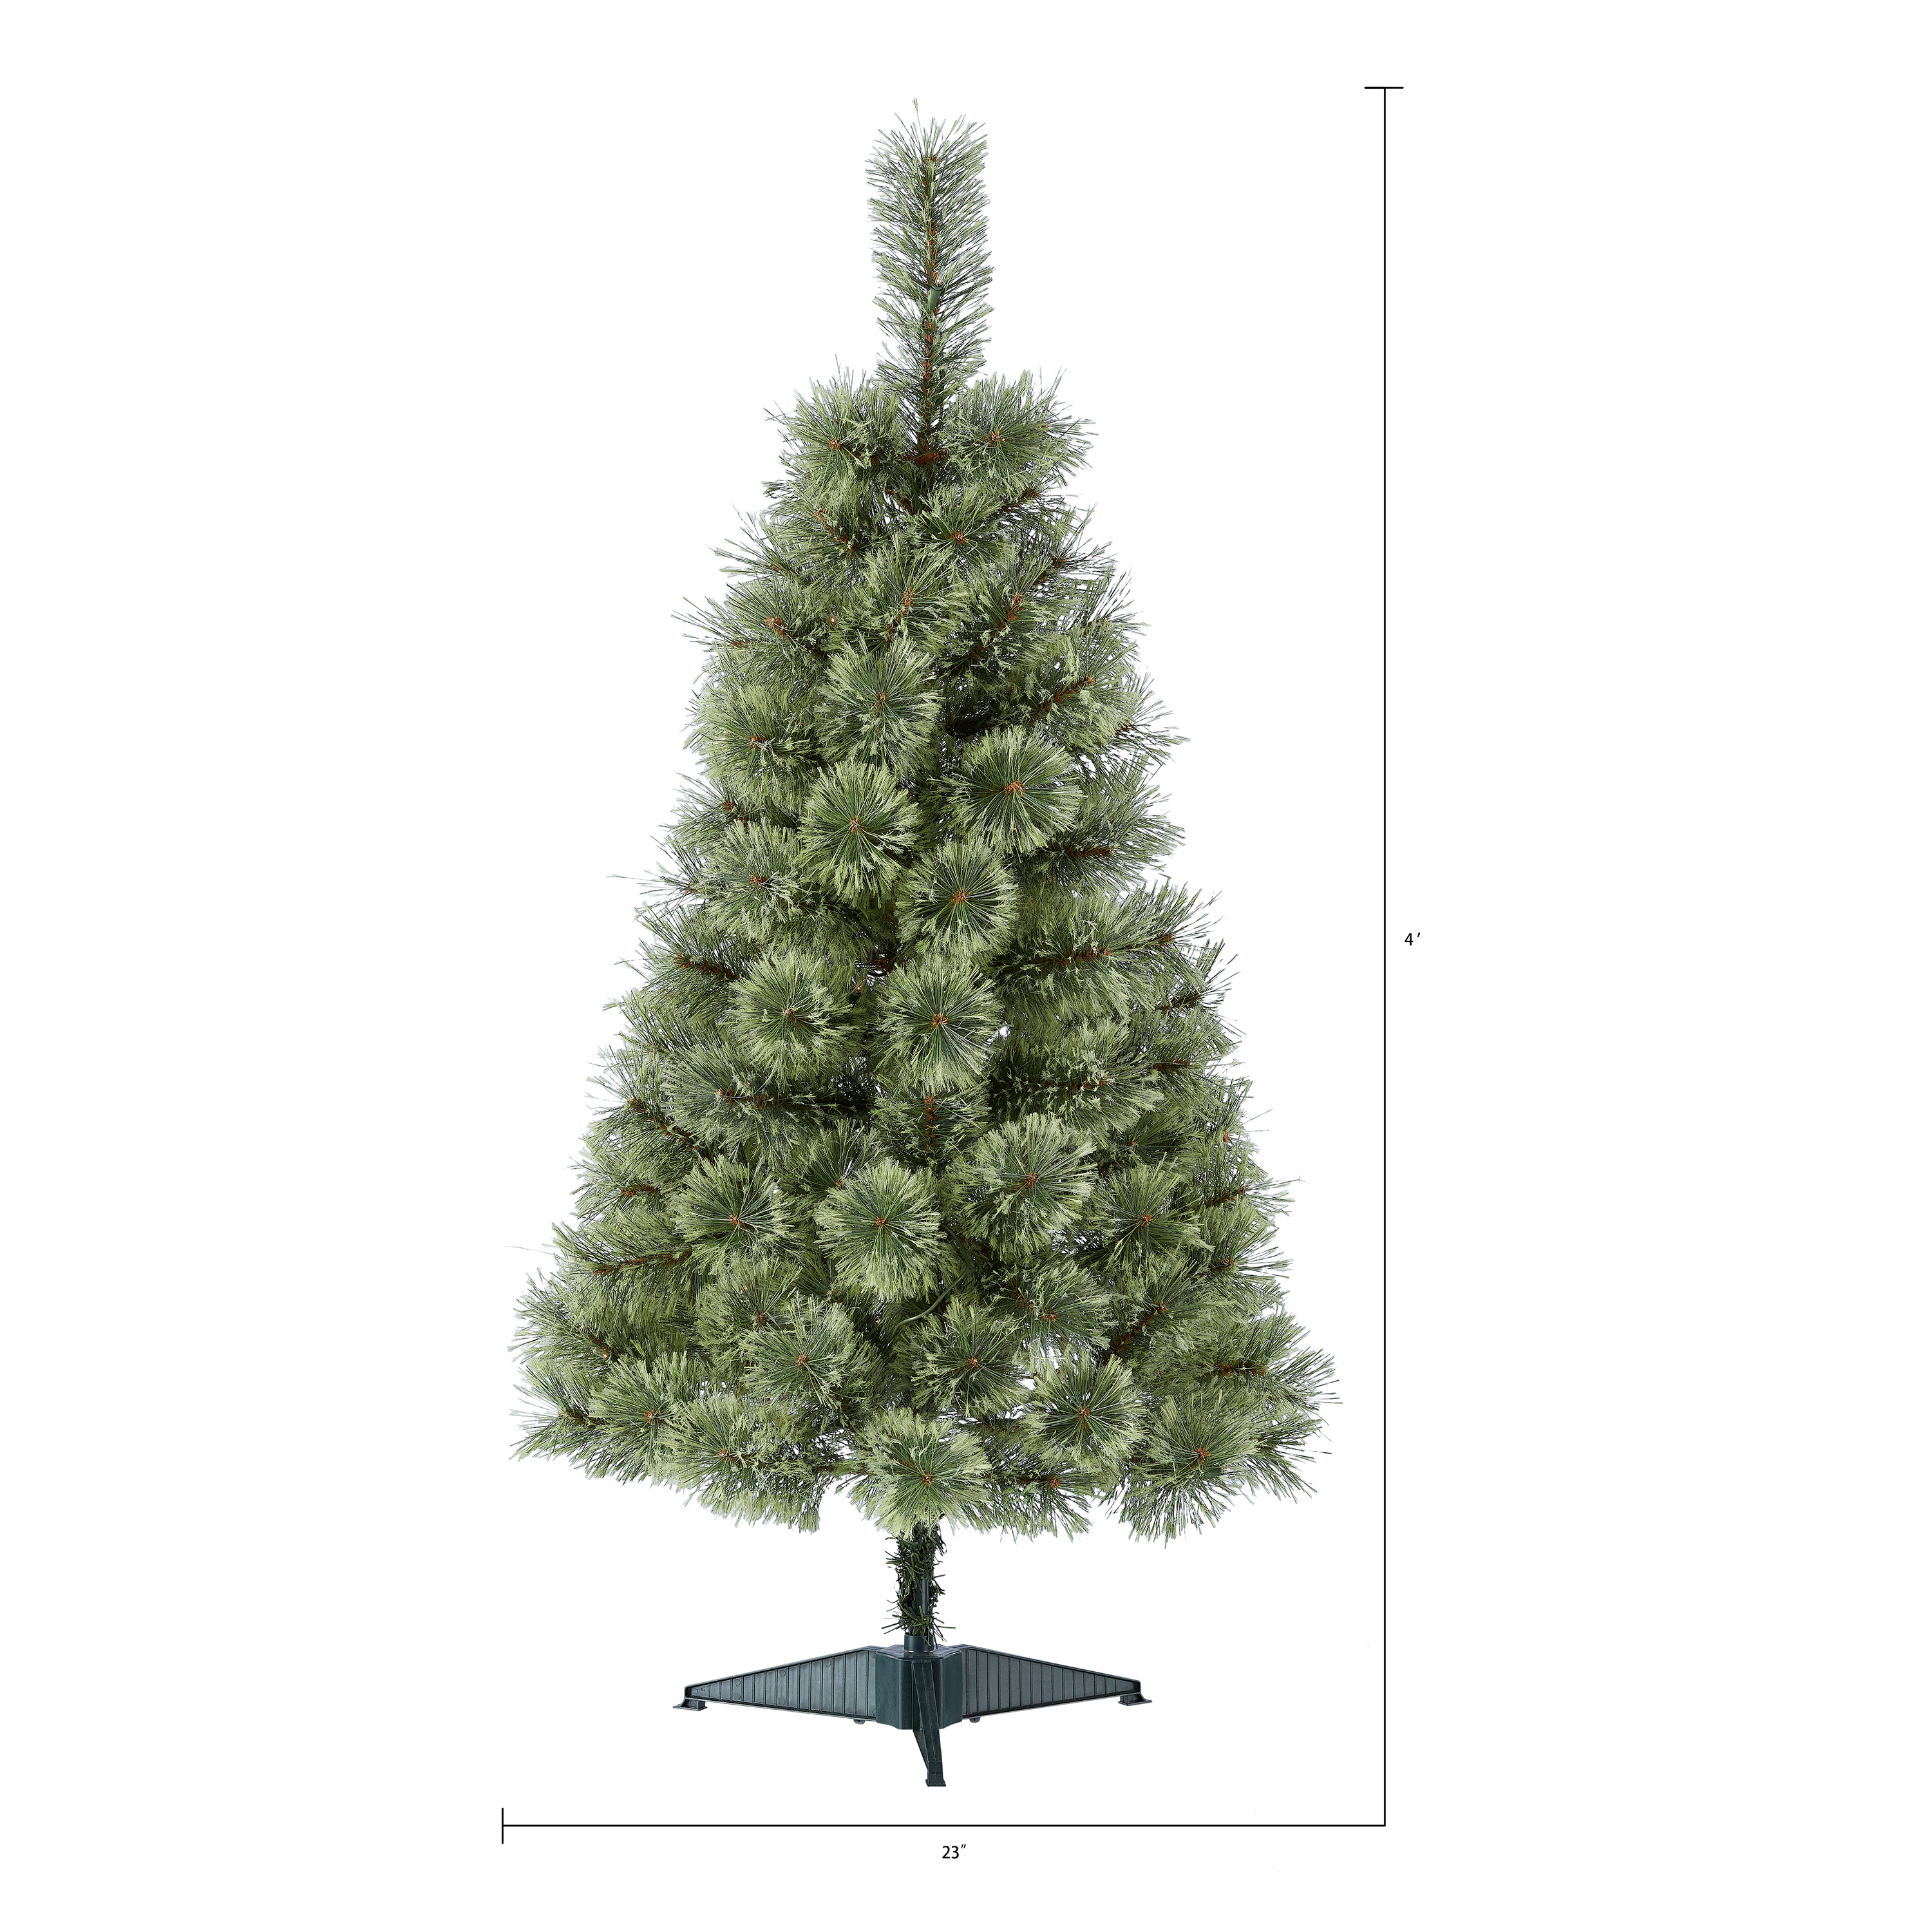 Artificial Christmas Tree Sizes.Holiday Time Prelit Conical Christmas Tree 4 Ft Green